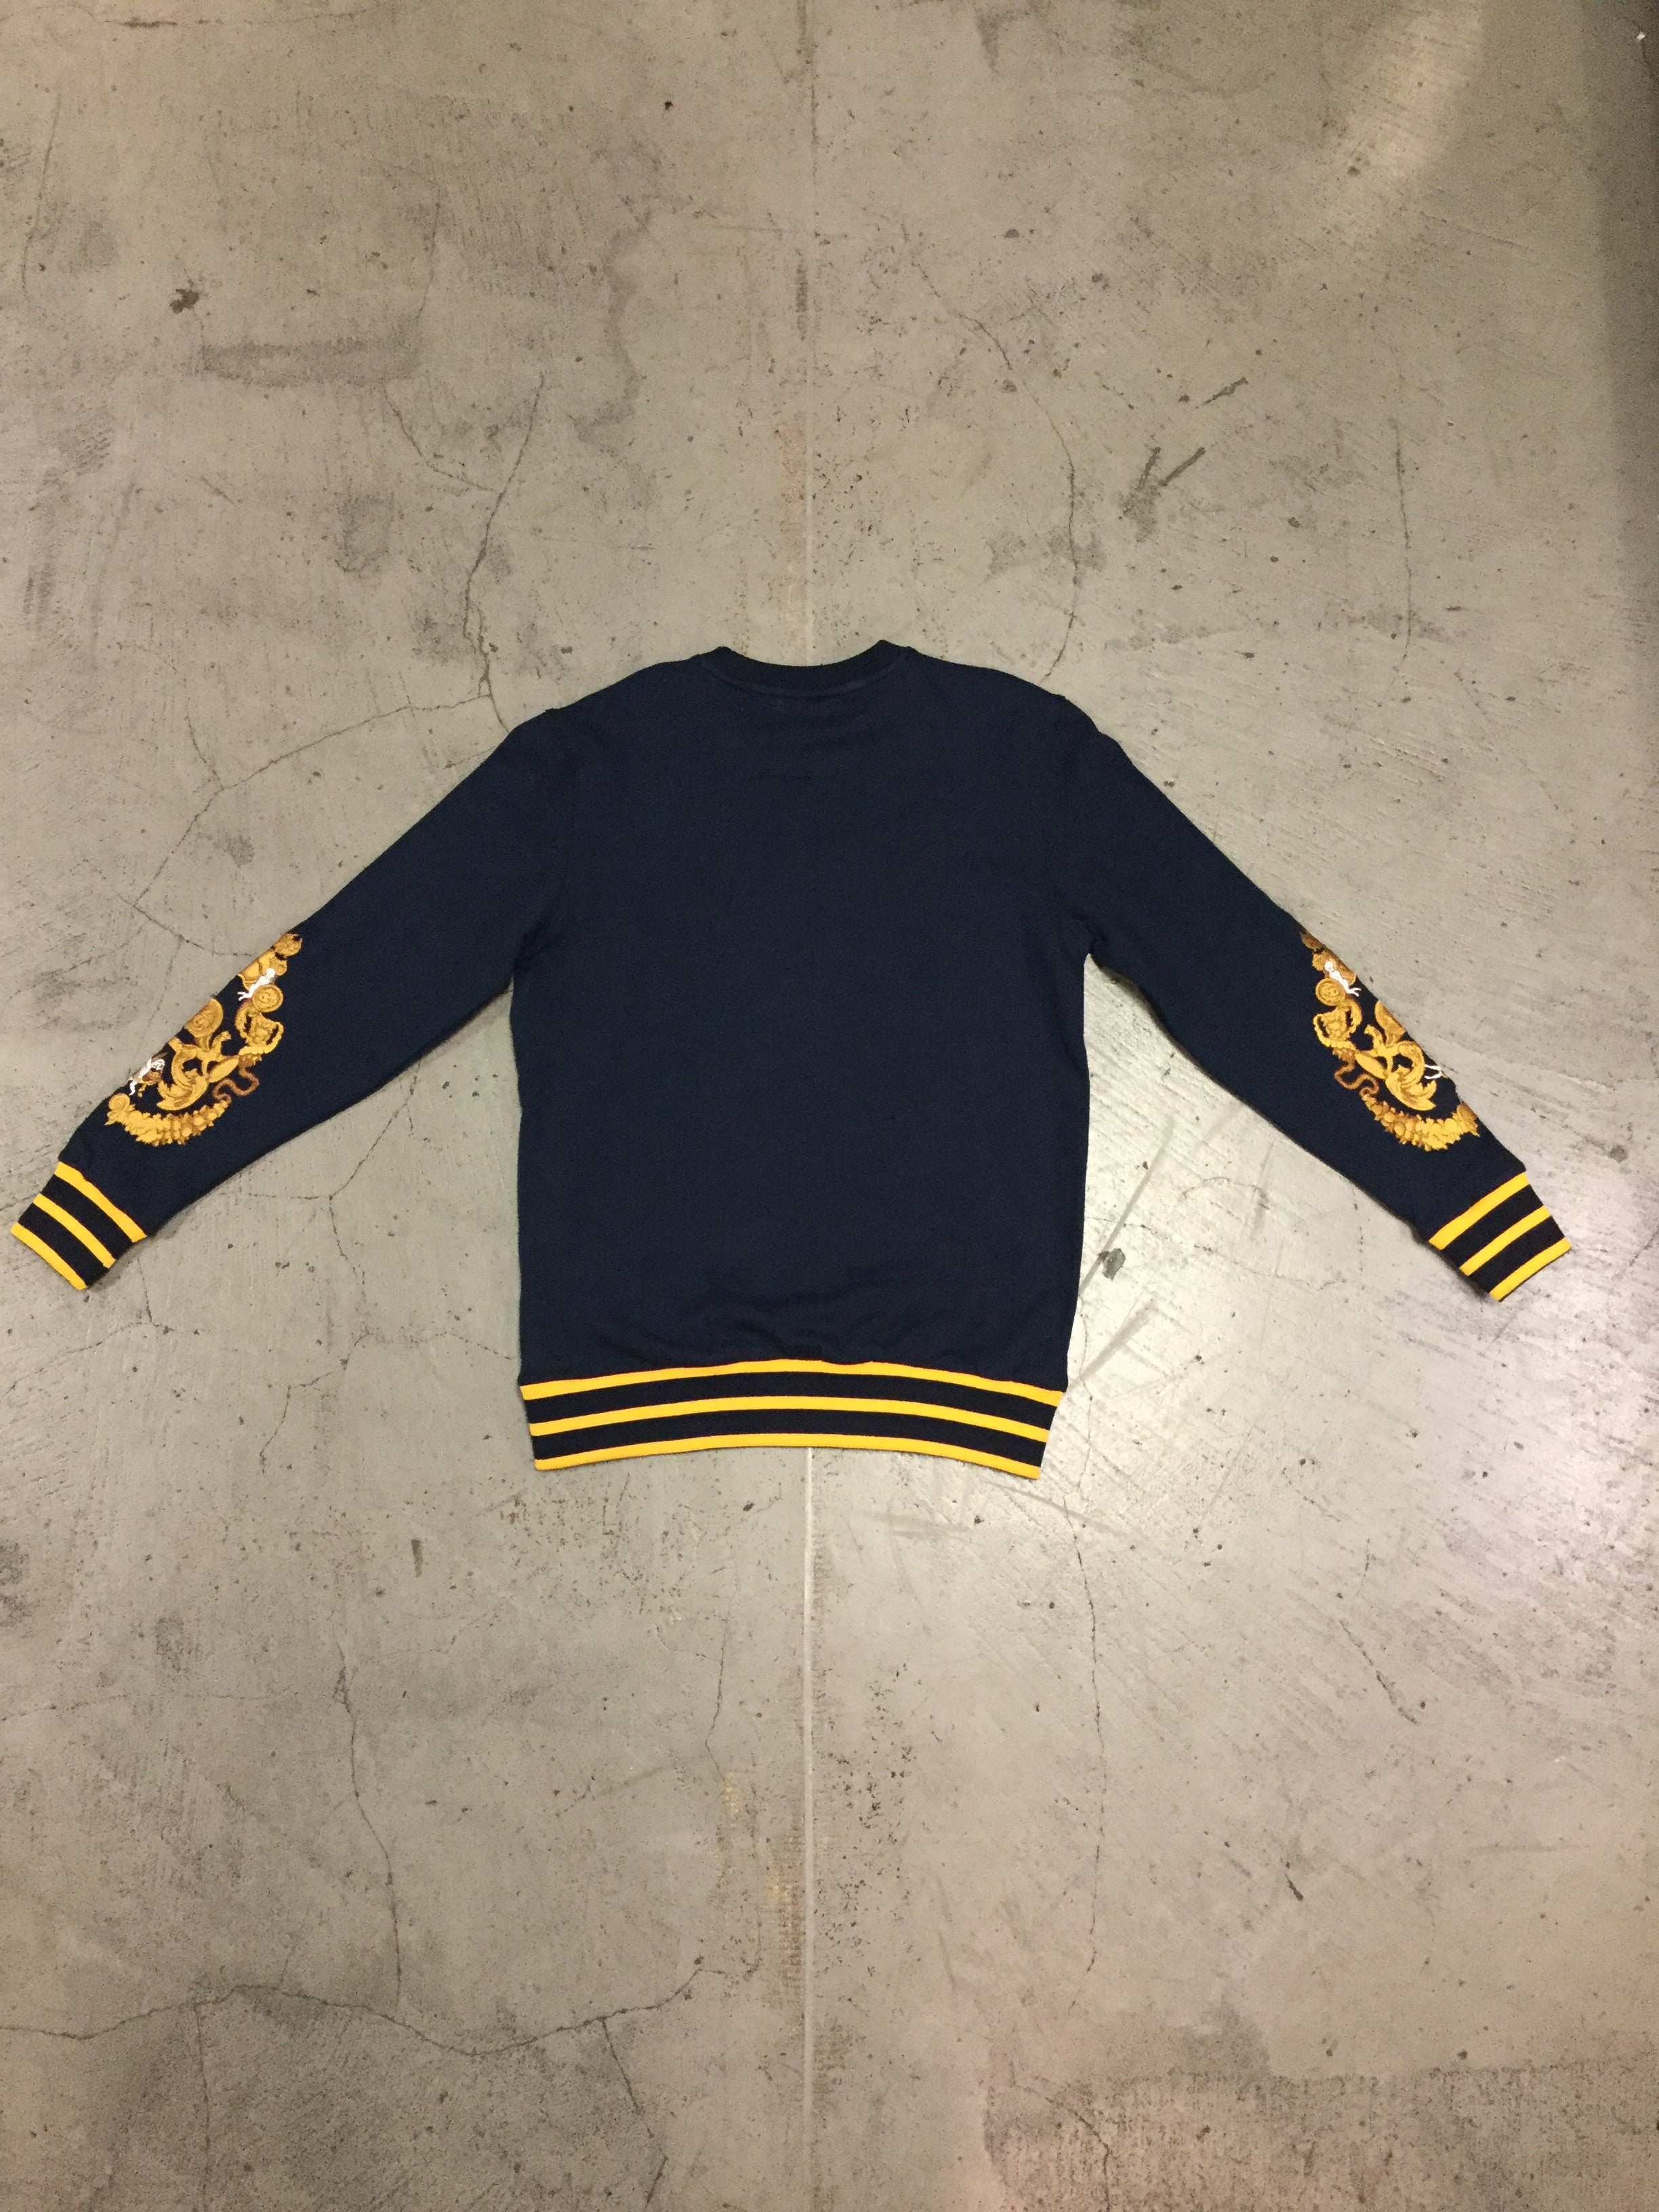 Damati Crewneck Sweatshirt - Navy